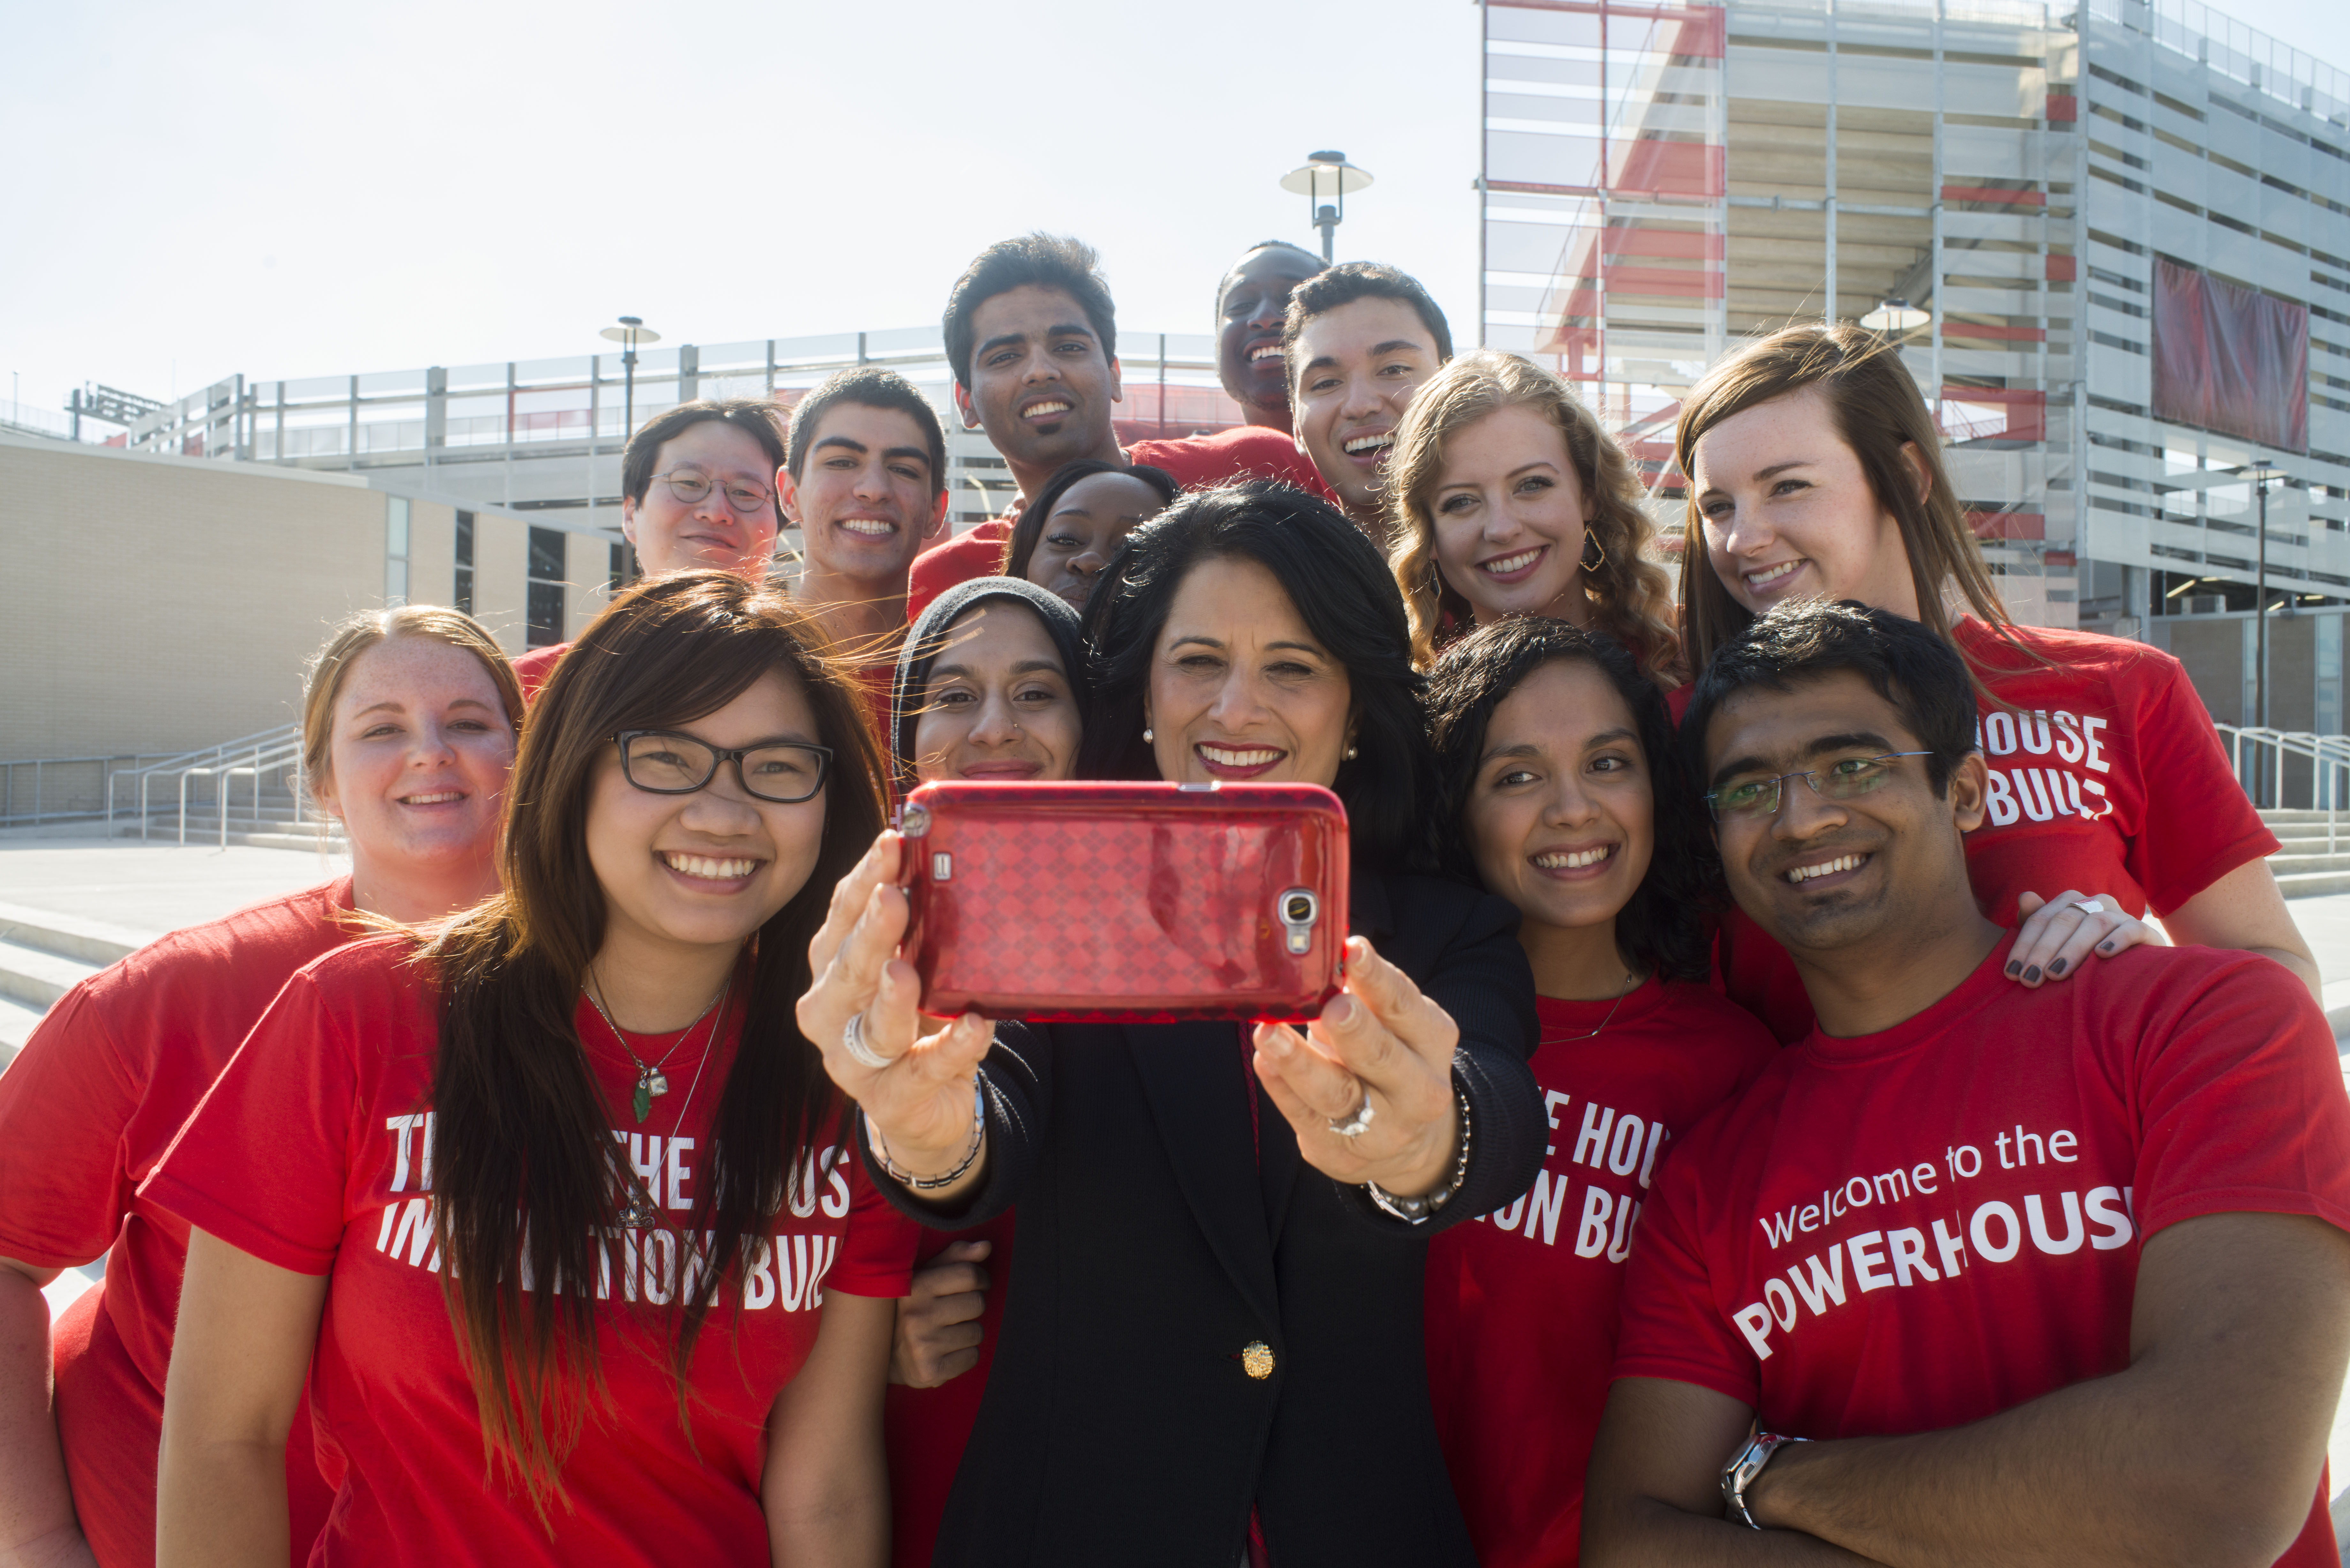 Students and others at the University of Houston can keep track of President Renu Khator on Twitter. She regularly updates her 91,000-plus followers on daily activities such as touring campus, getting a flu shot and caring for Ruby, the stray German shepherd she adopted.